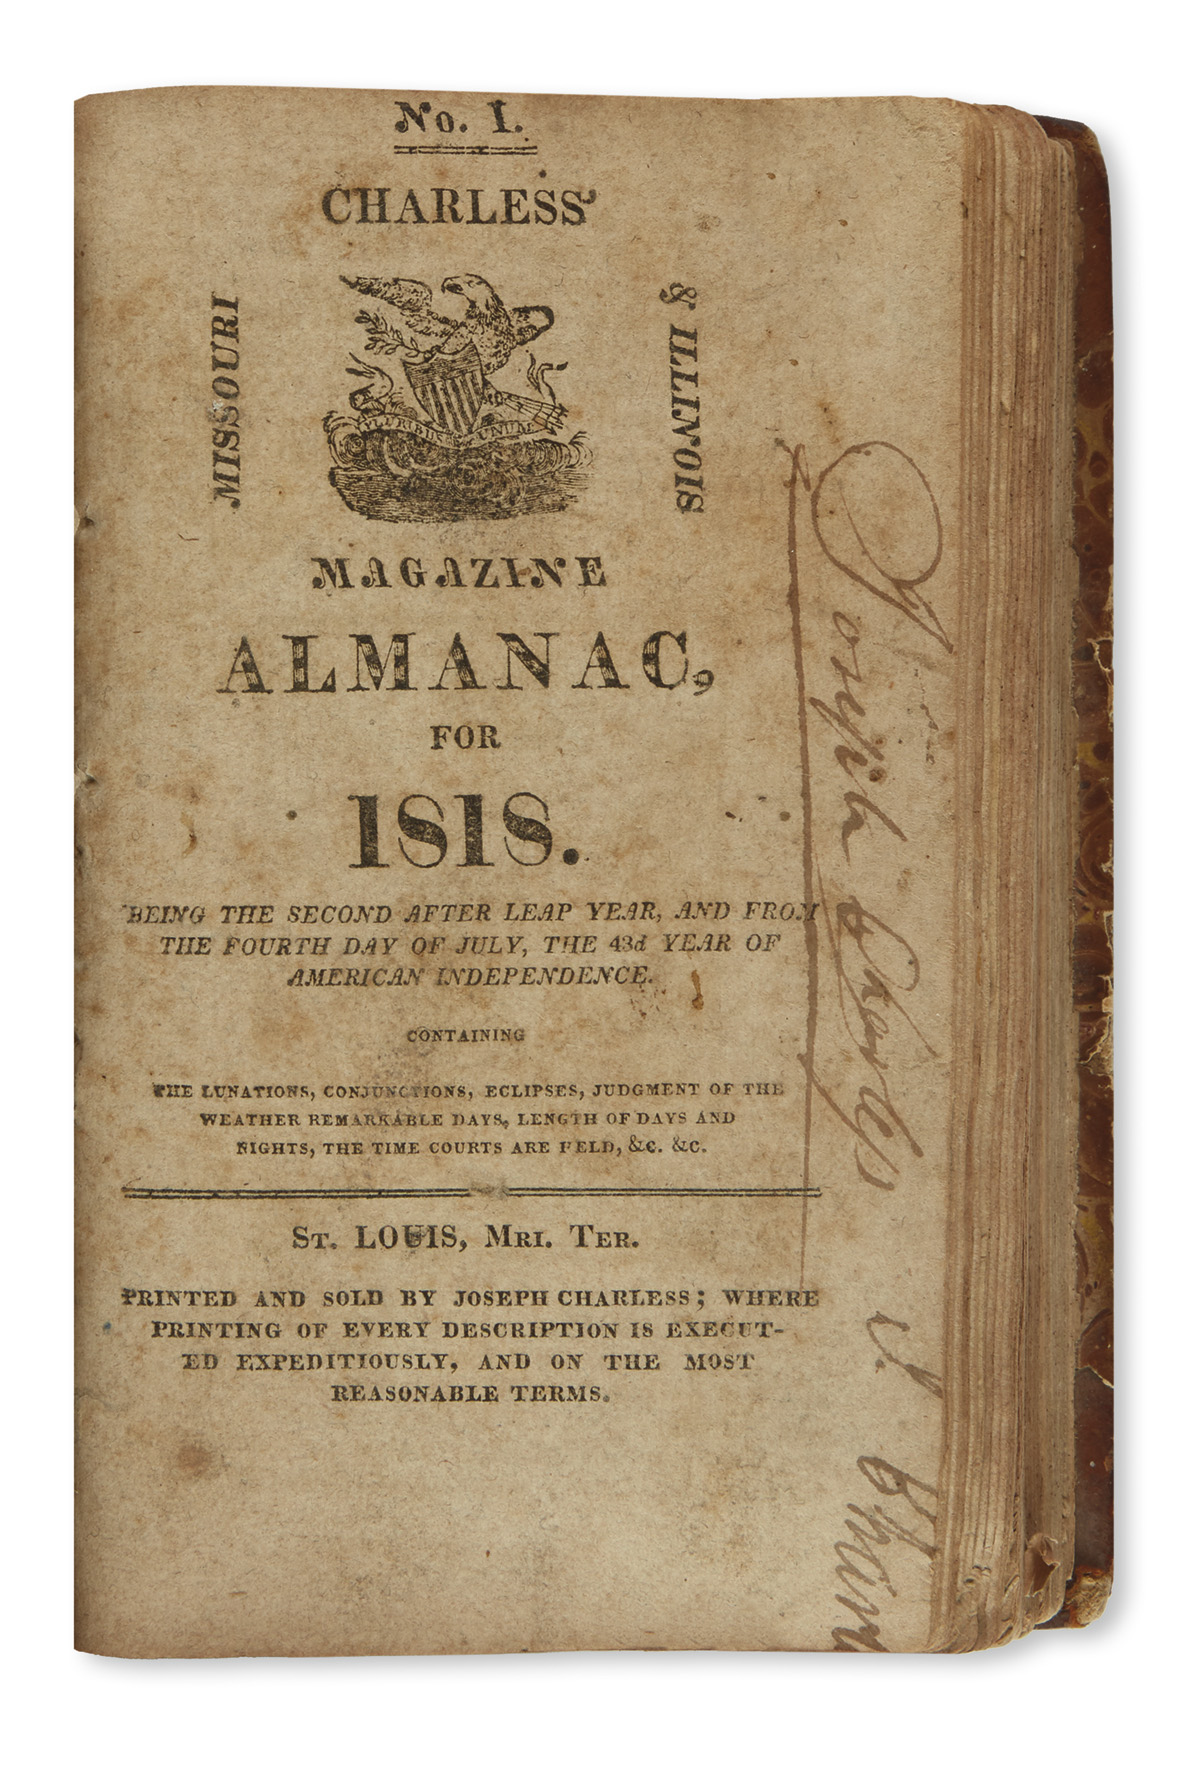 (ALMANACS)-Volume-of-early-St-Louis-and-Pittsburgh-almanacs-including-the-first-one-issued-in-St-Louis